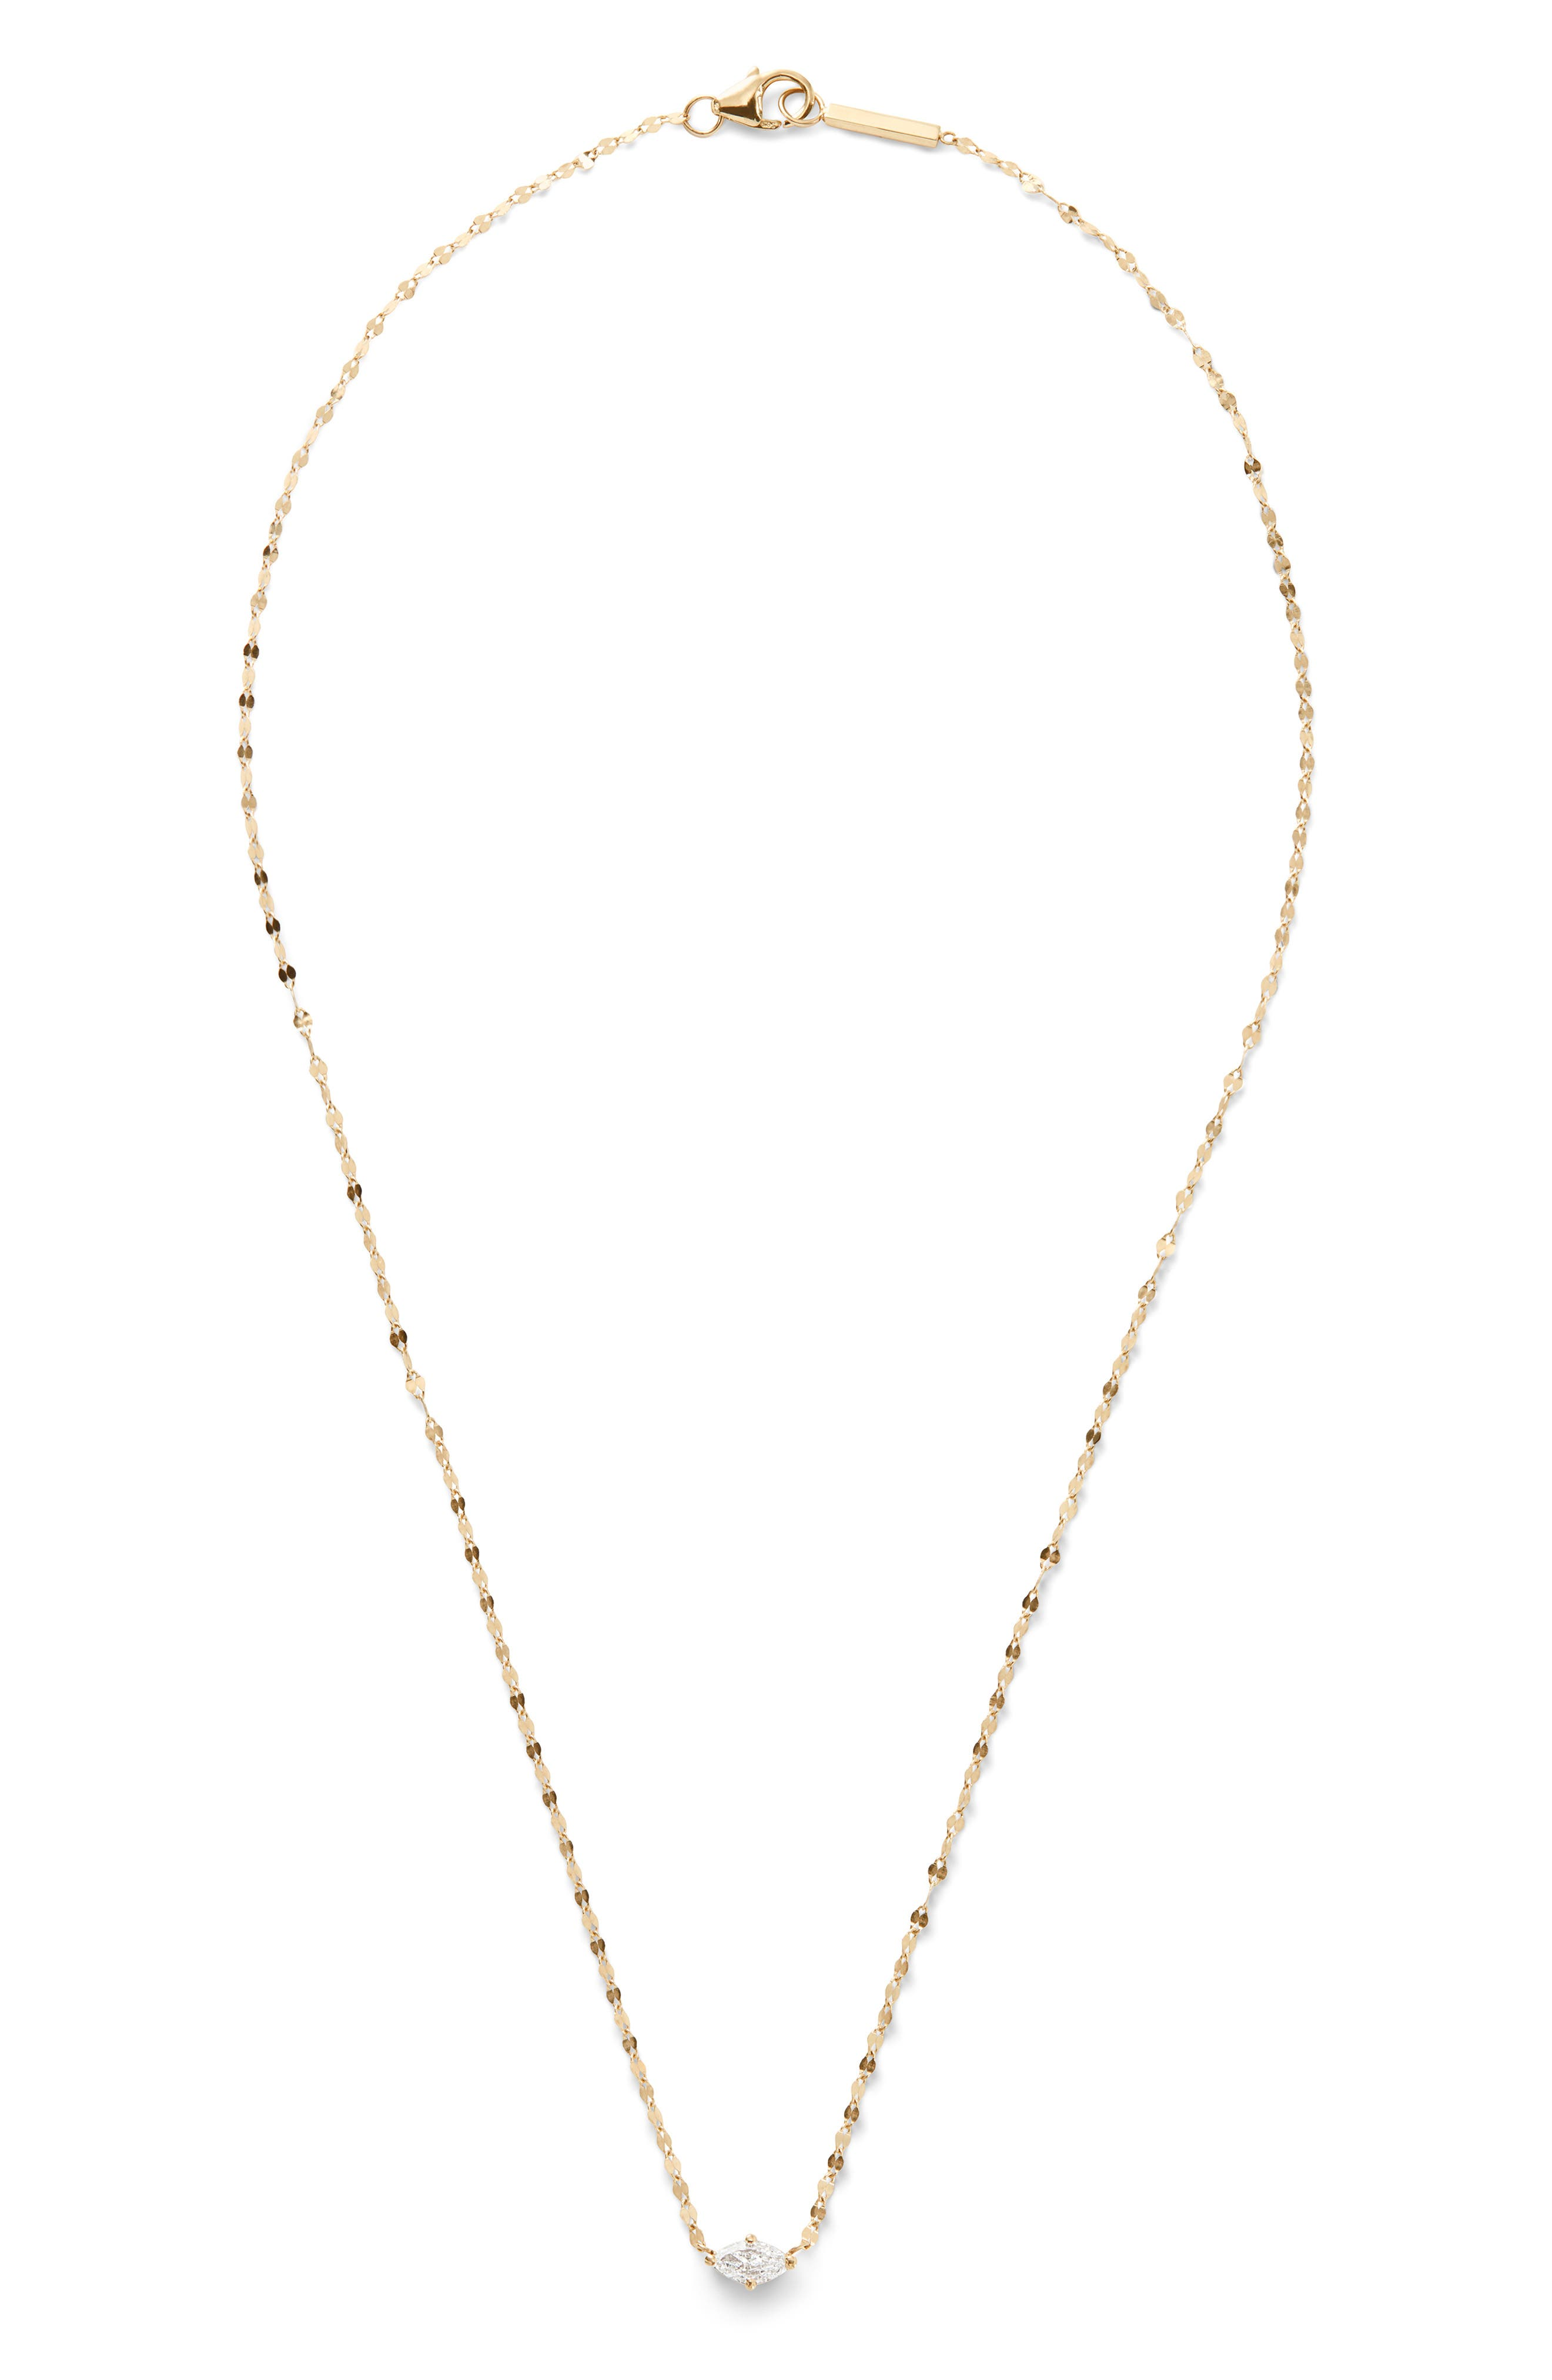 Marquise Diamond Chain Necklace,                             Main thumbnail 1, color,                             GOLD